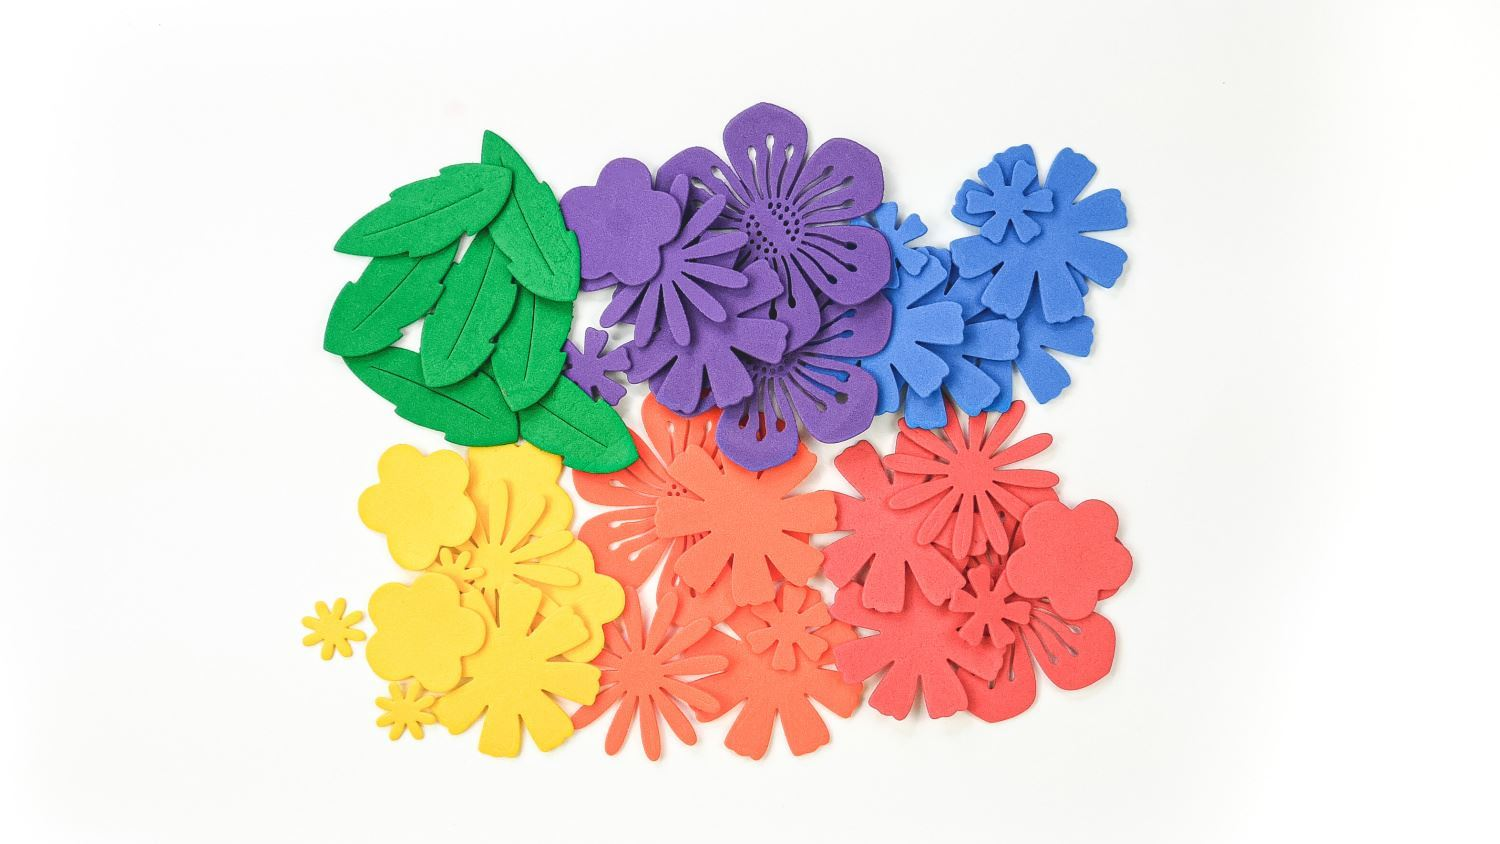 Cut out flowers and leaves from foam